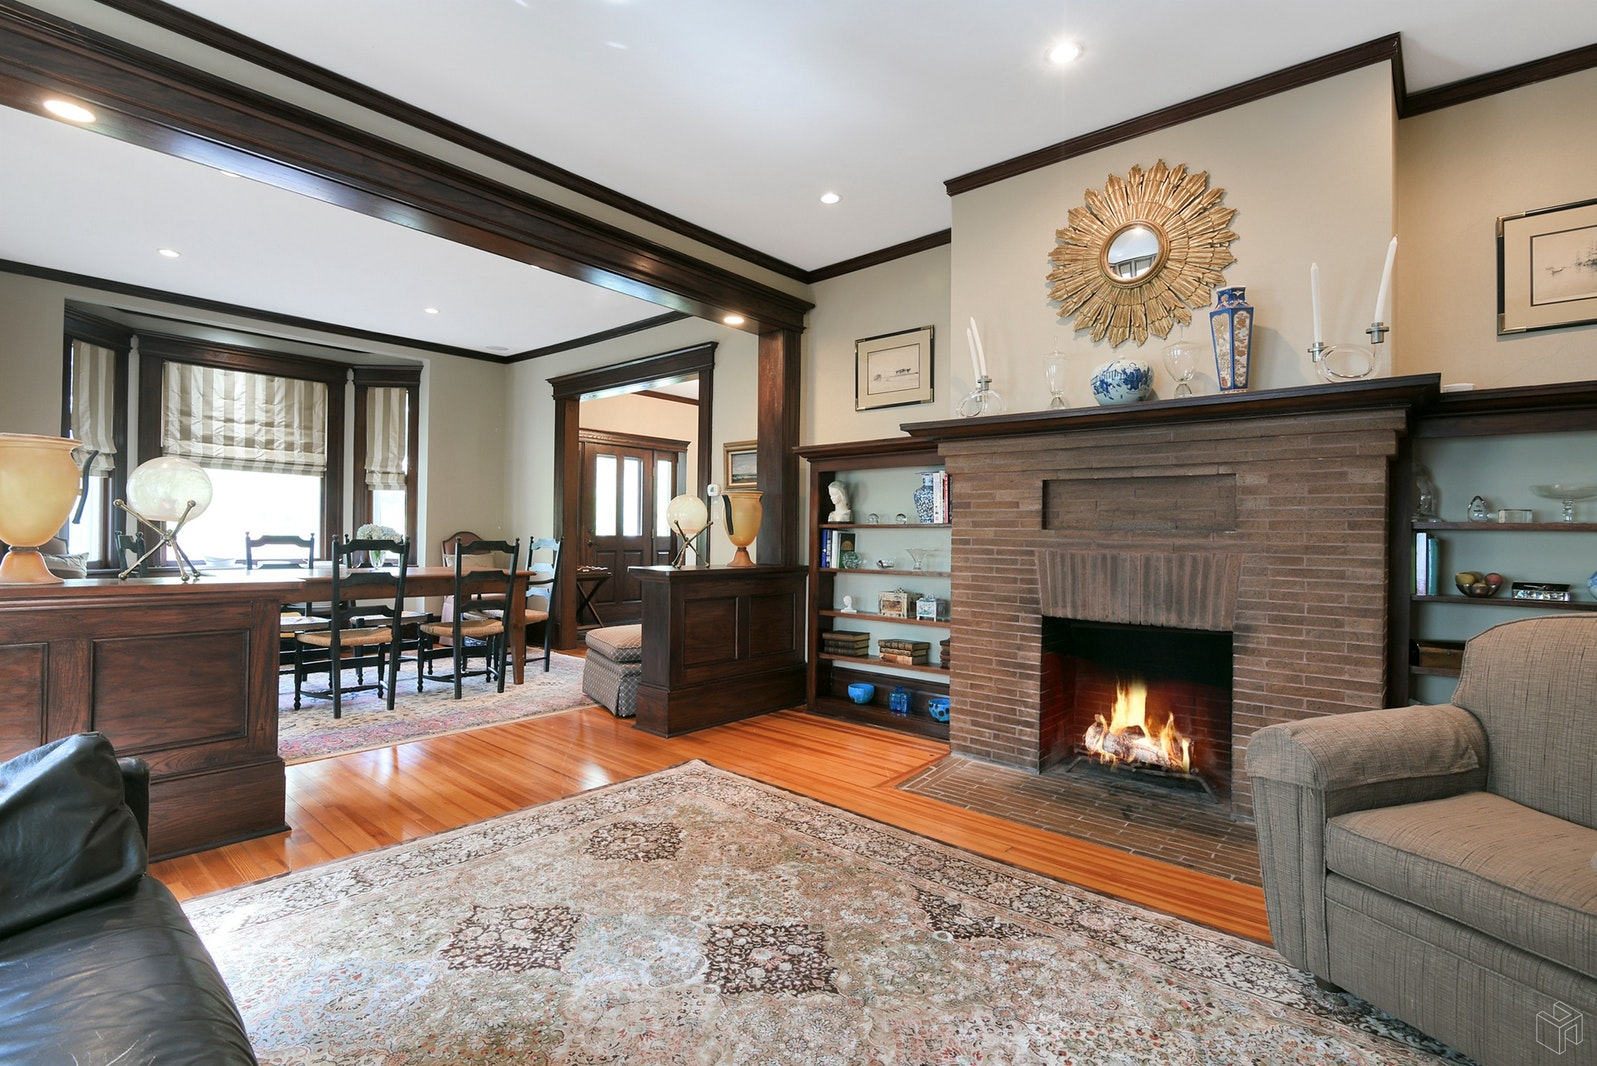 41 Erwin Park Road, Montclair, New Jersey, 07042, $865,000, Property For Sale, Halstead Real Estate, Photo 7